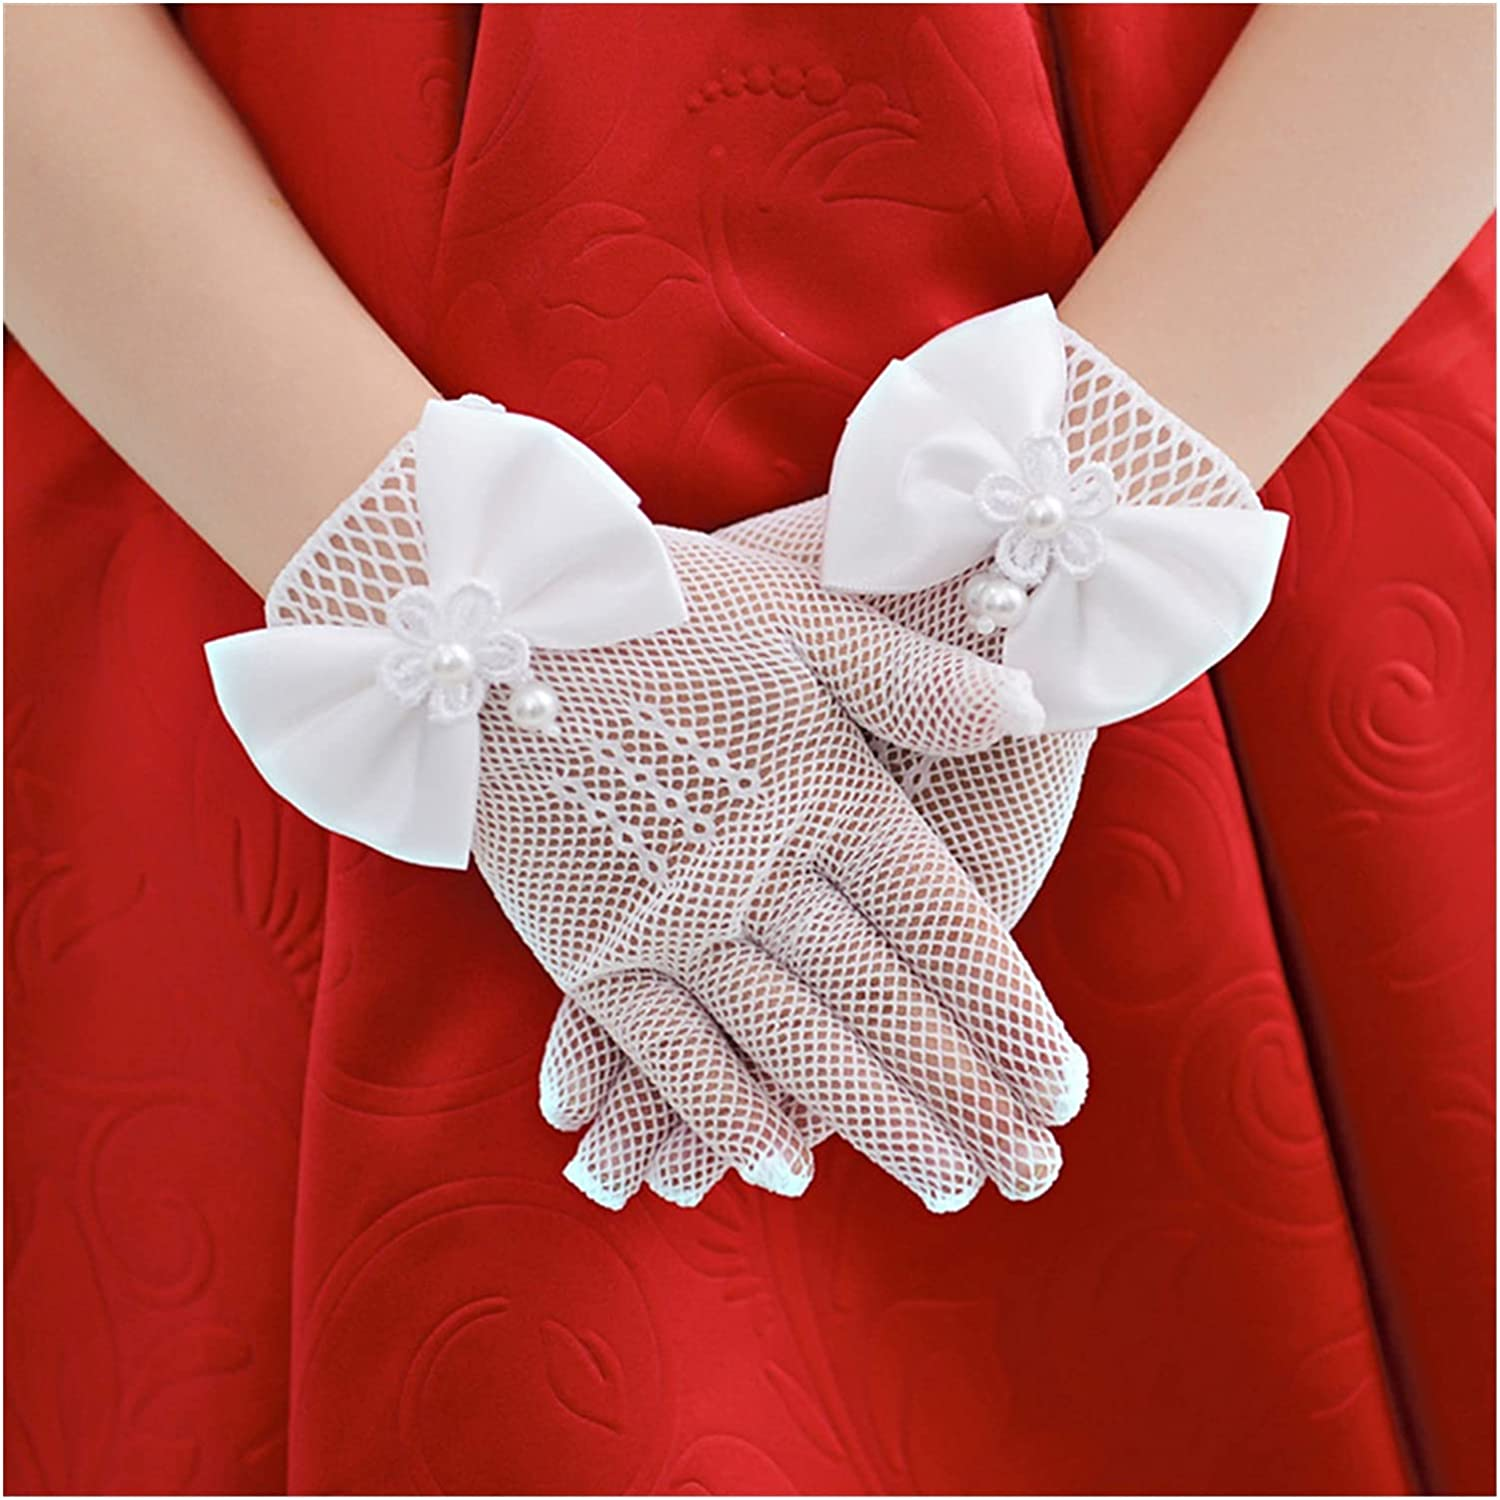 DMYONGLIAN Lace Gloves Kids Lace Pearl Mesh Bow Gloves Girl Party Supplies Birthday Ceremony Coronation Accessories for Gilrs Princess Gift Mittens Accessories